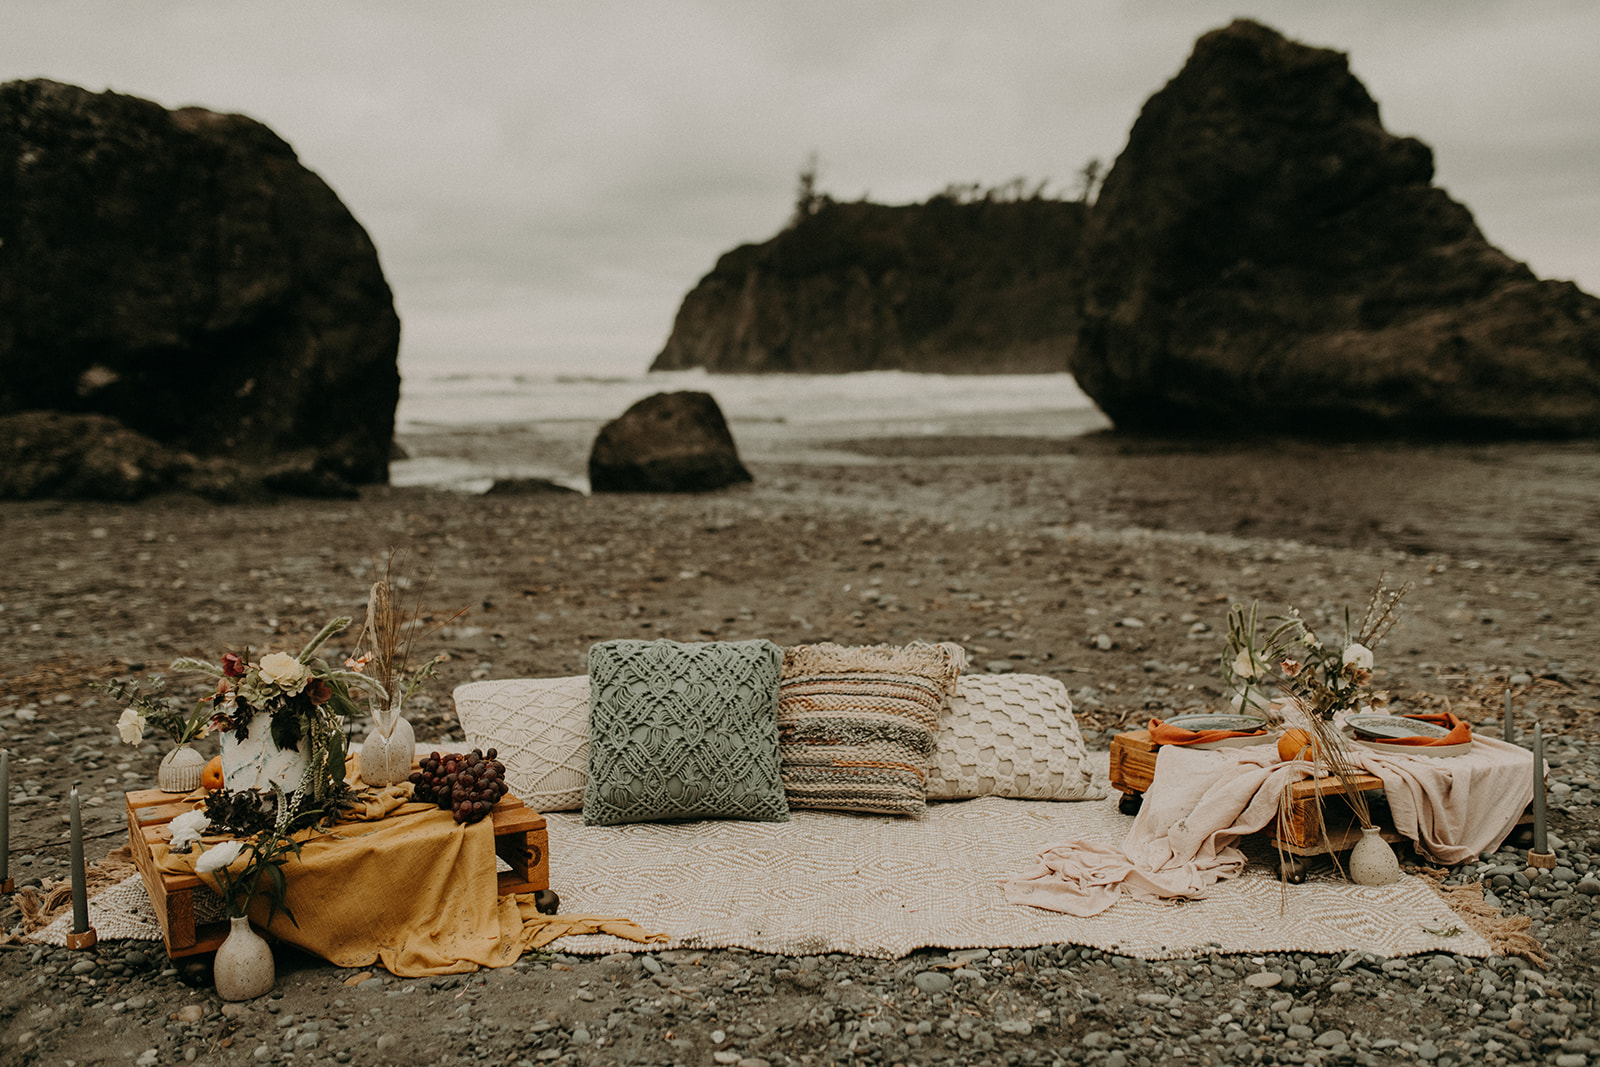 Ruby_Beach_Styled_Elopement_-_Run_Away_with_Me_Elopement_Collective_-_Kamra_Fuller_Photography_-_Details-43.jpg